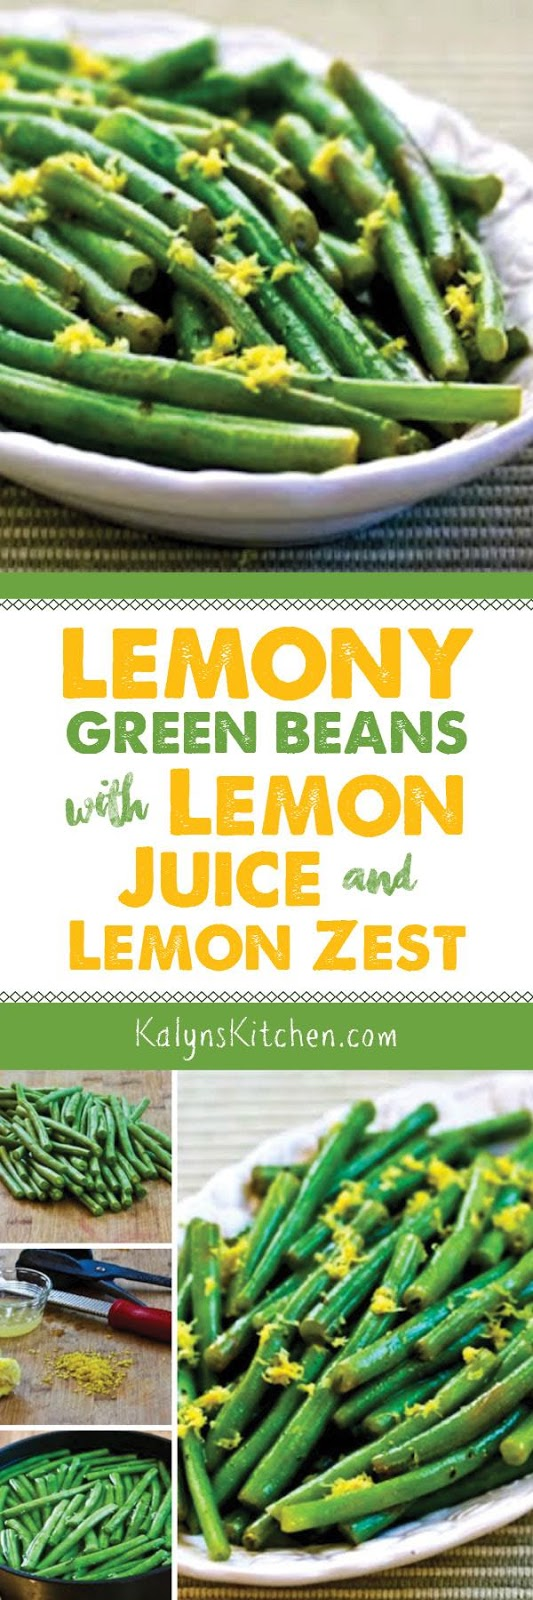 Lemony Green Beans with Lemon Juice and Lemon Zest - Kalyn ...